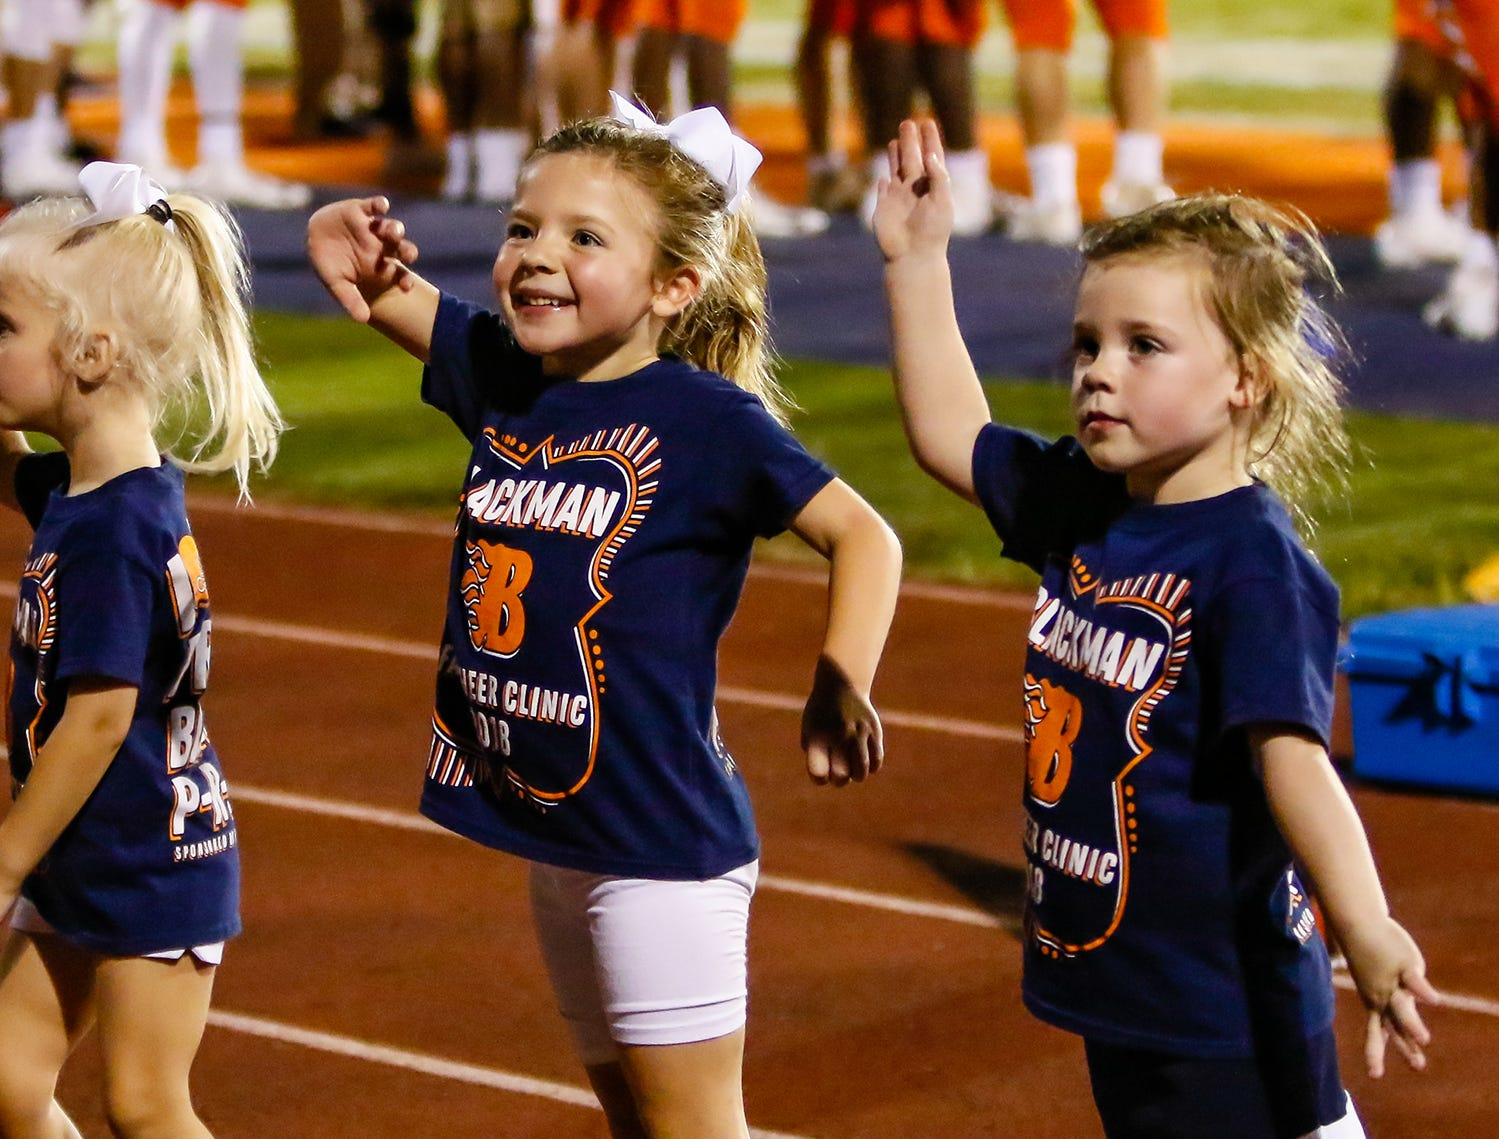 Special cheerleaders worked the sidelines at the Siegel-Blackman game.